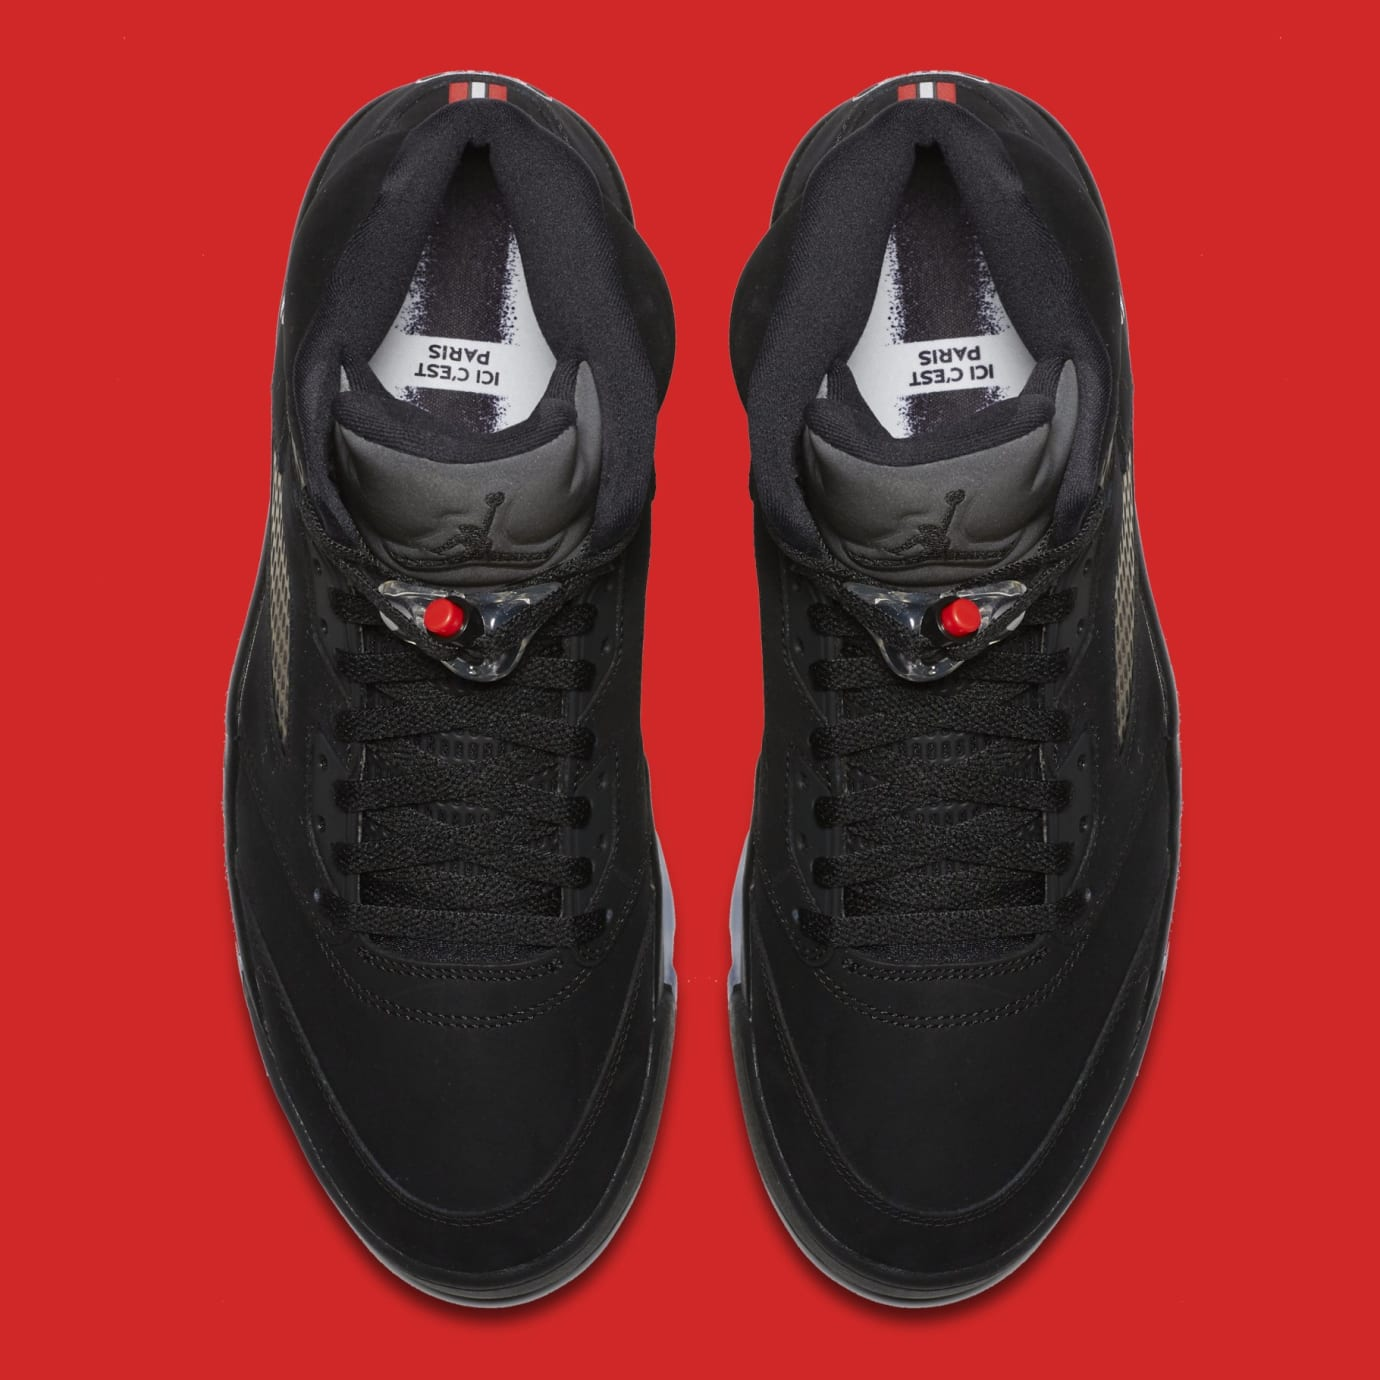 Air Jordan 5 Retro  Paris Saint-Germain  Images  f13fc4653